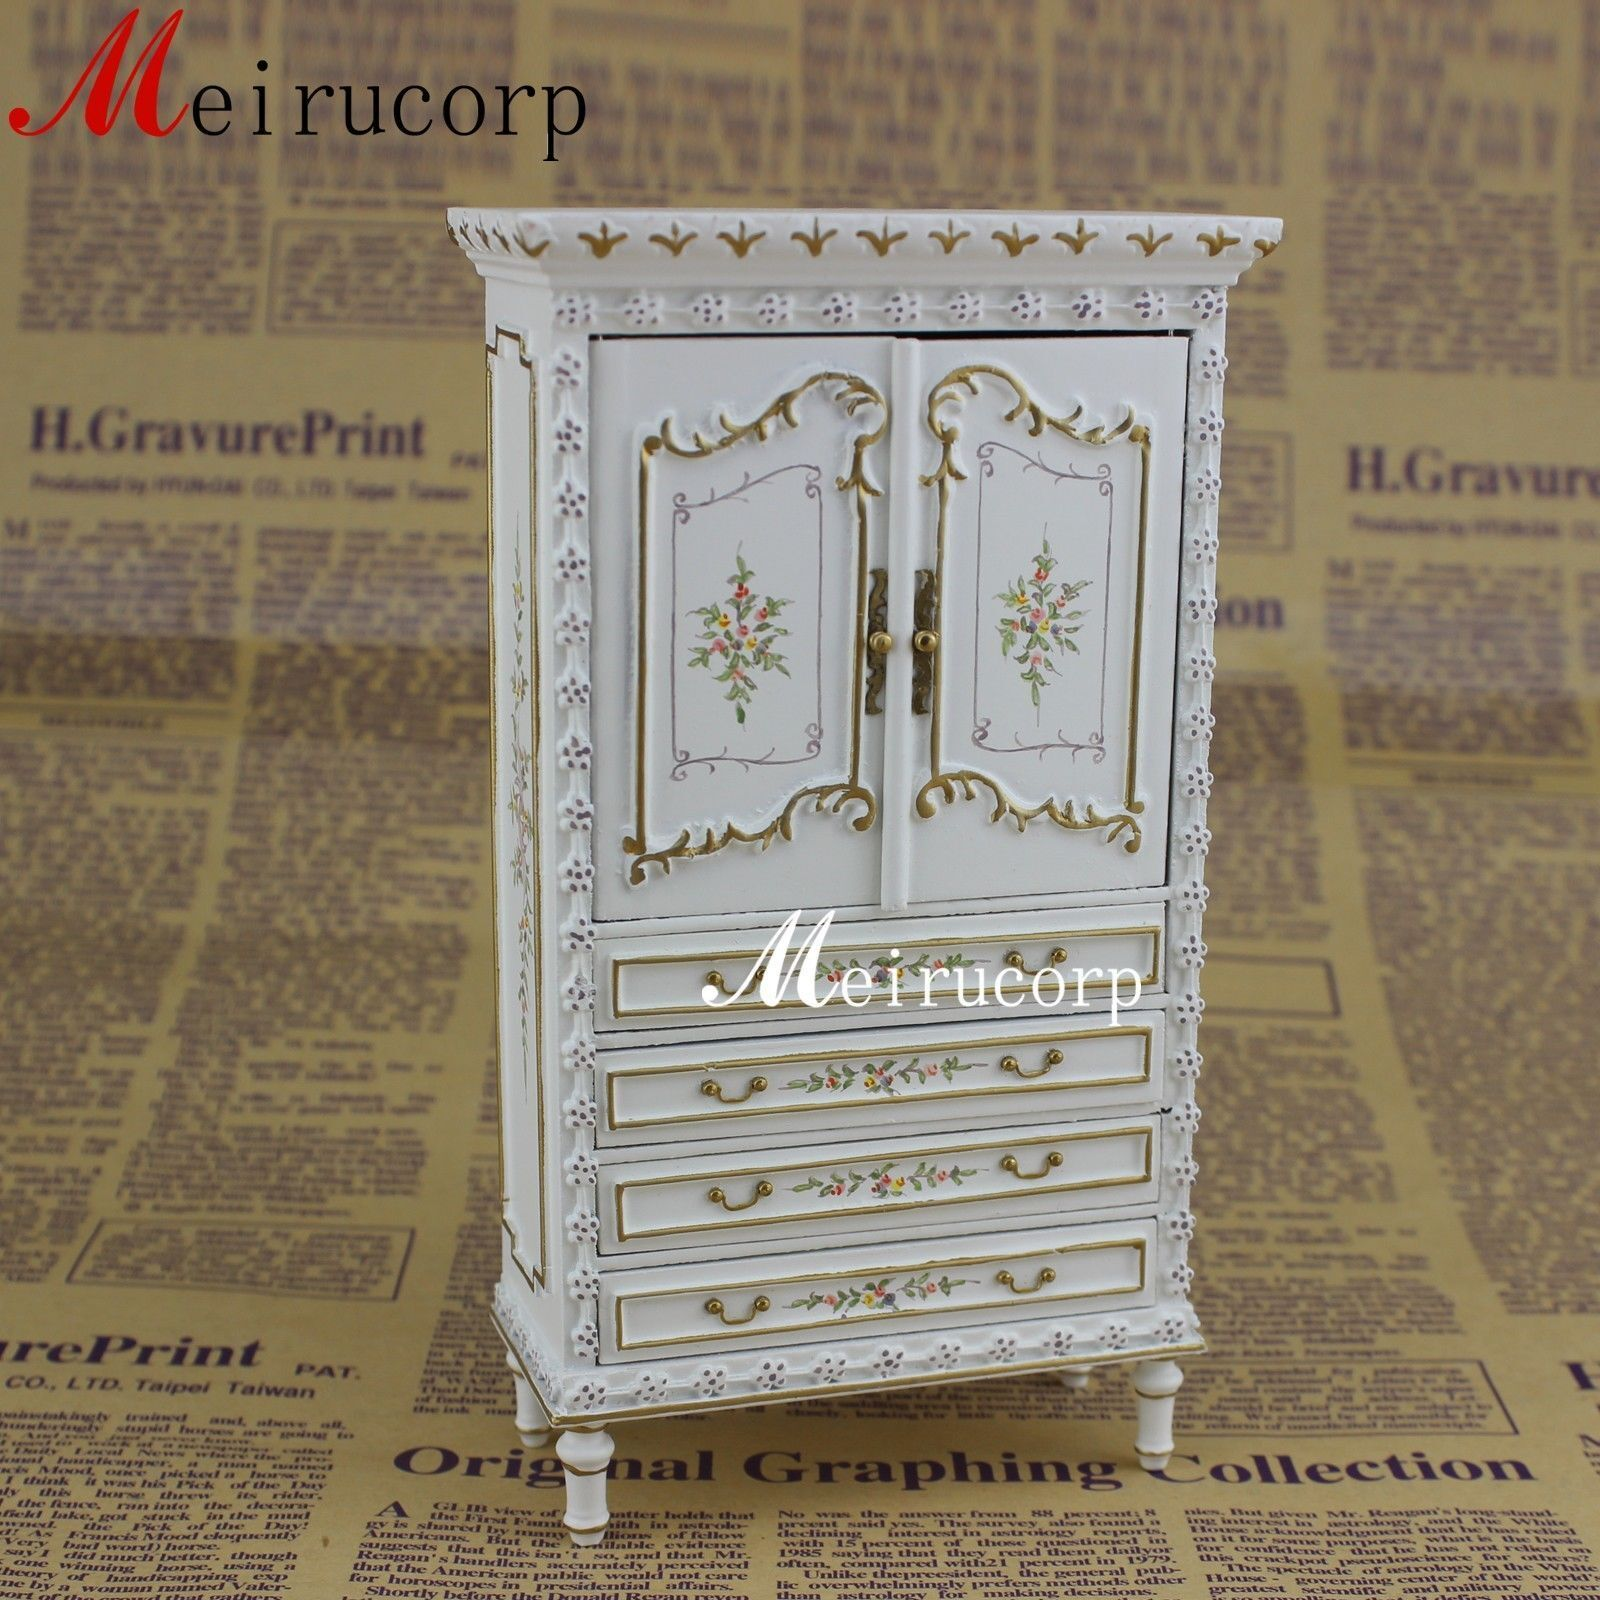 Fine 1 12 12 12 scale bambolahouse miniature furniture bianca collection cabinet f31adf